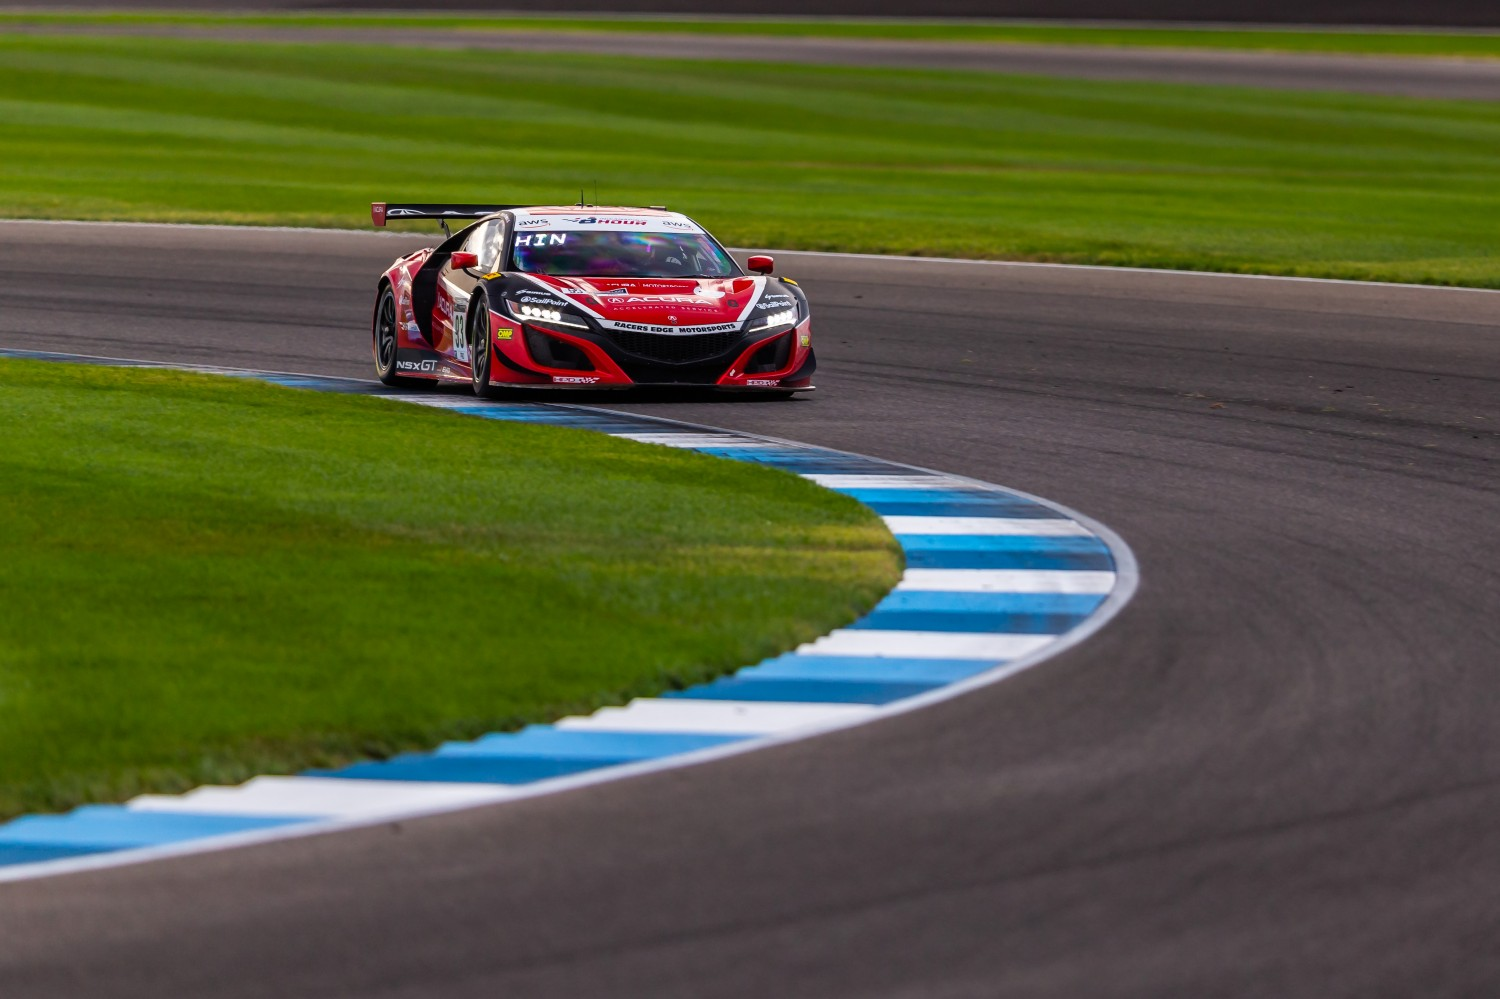 Racers Edge leads Honda/Acura one-two in #Indy8H Pre-Qualifying